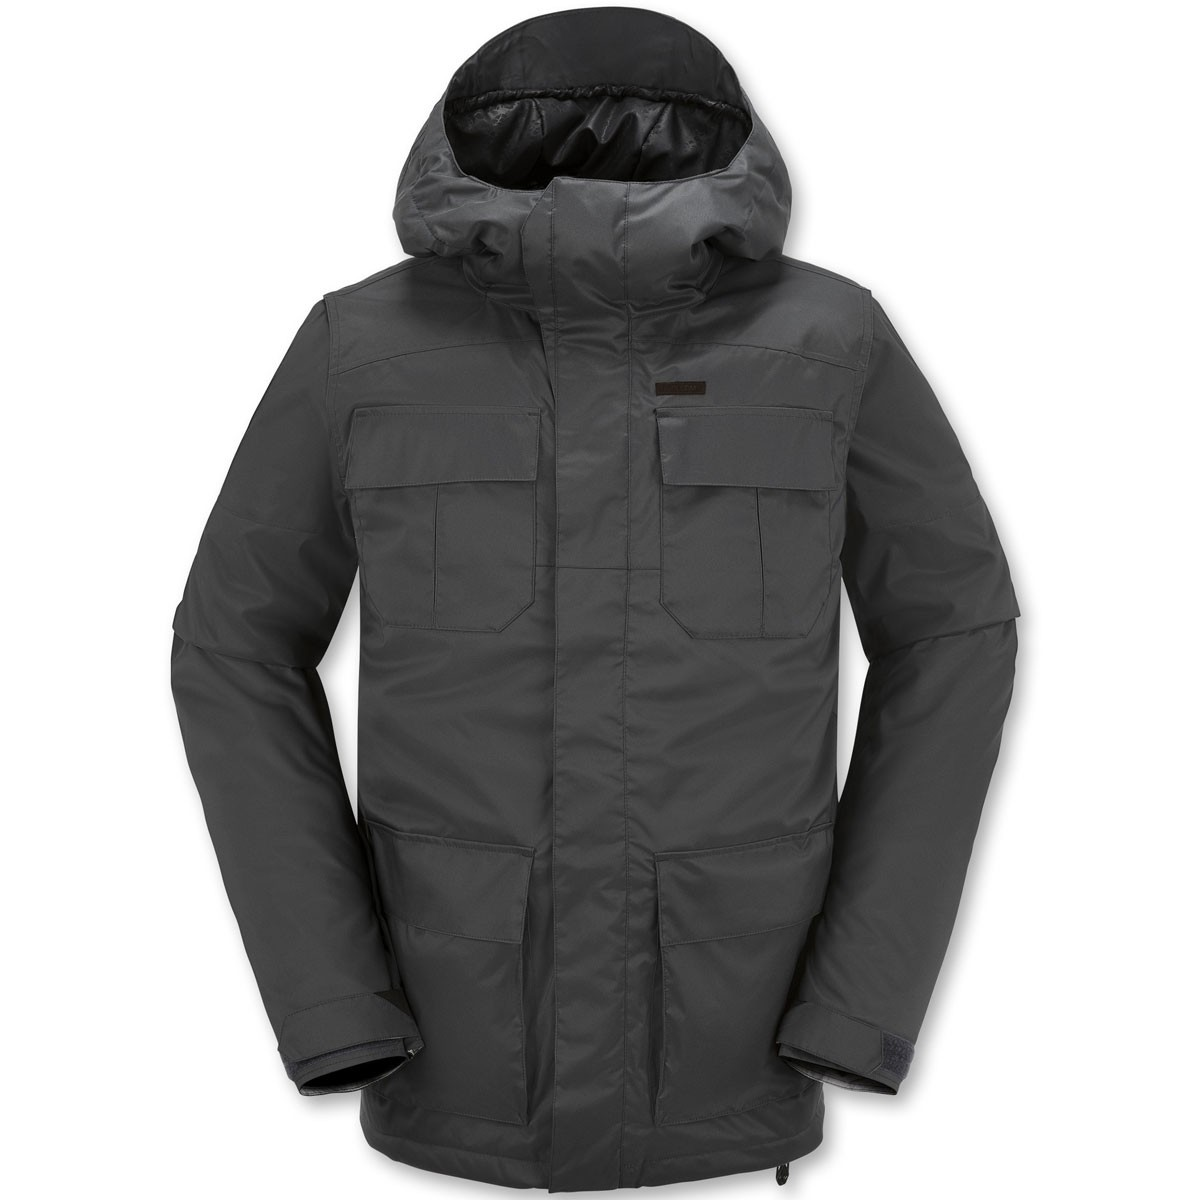 Volcom Alternate Insulated Snowboard Jacket - Charcoal